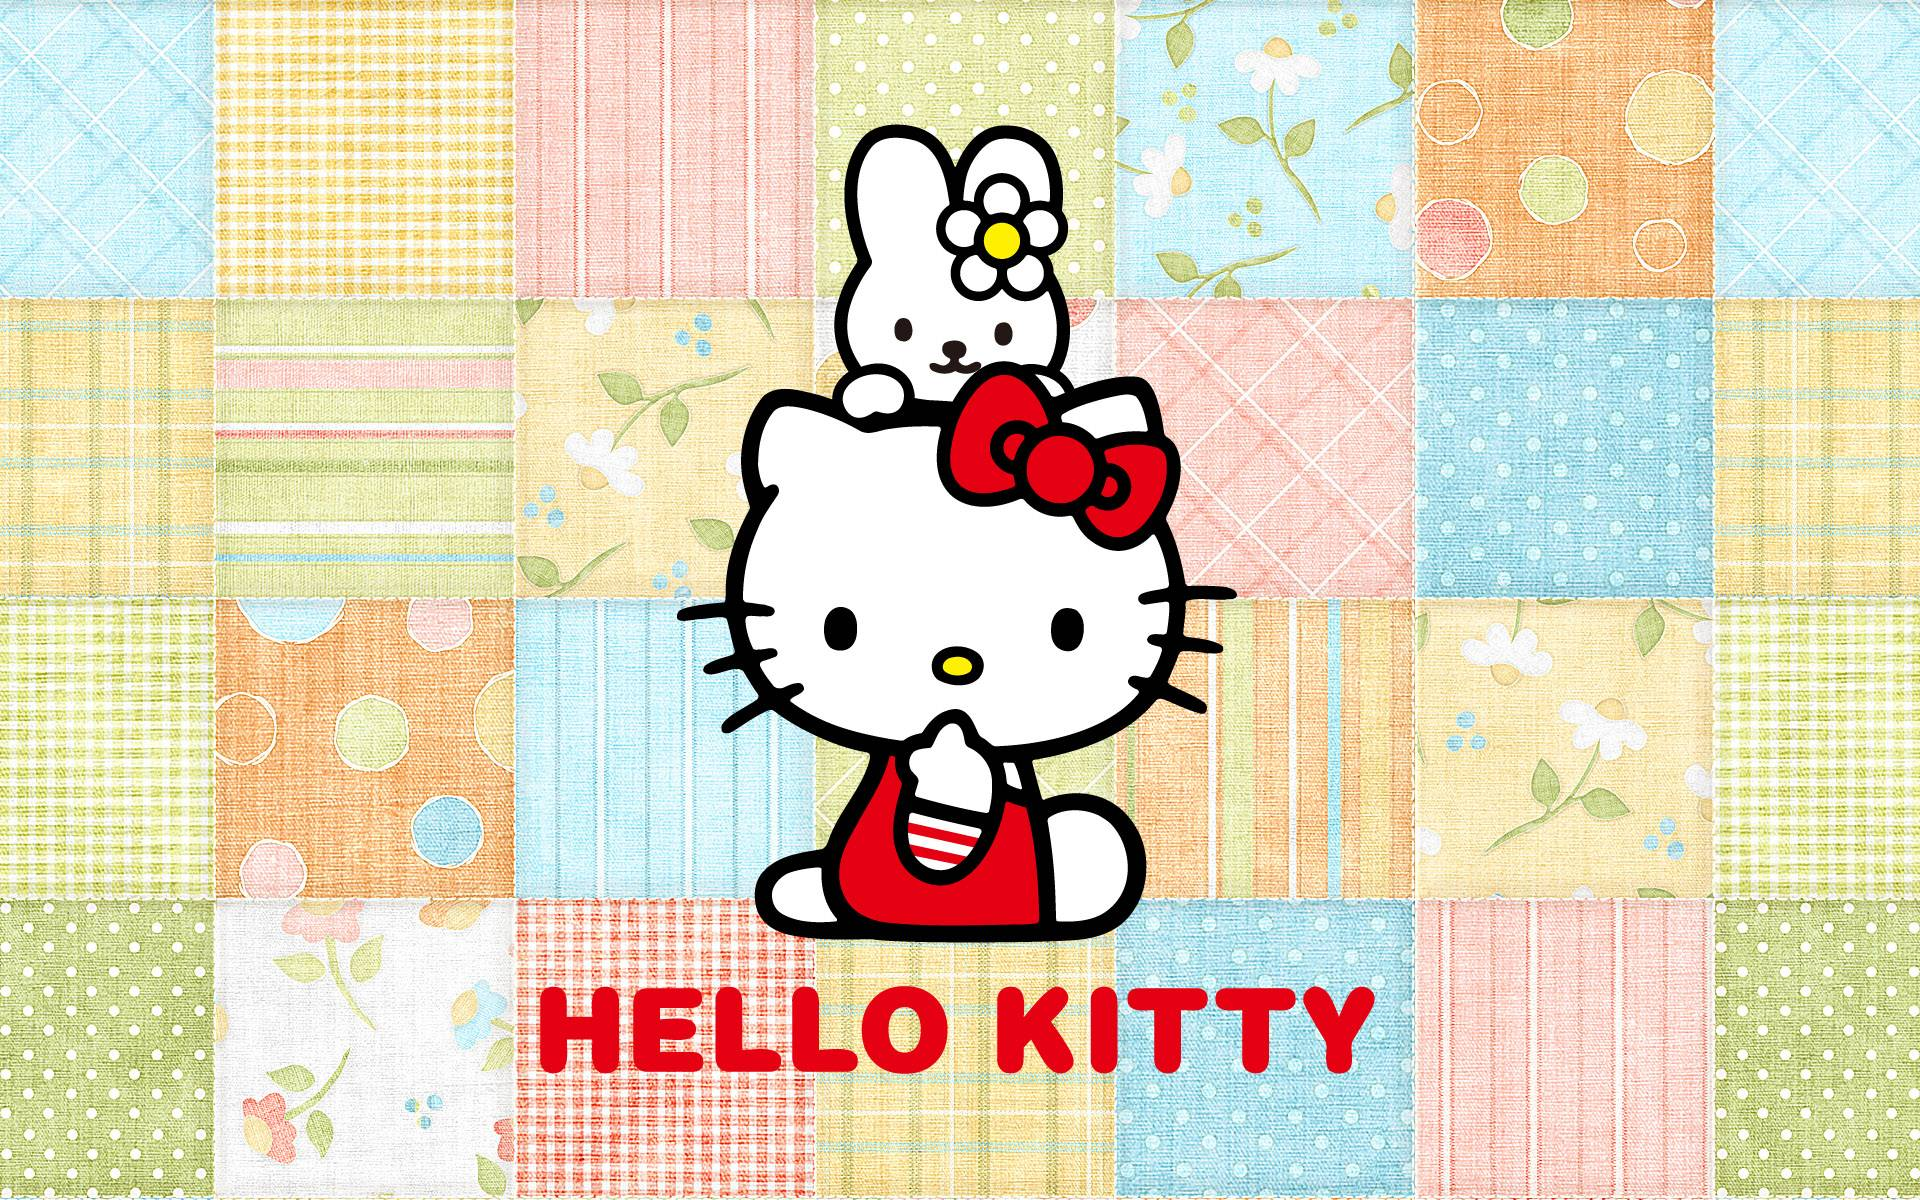 Hello kitty desktop backgrounds wallpapers wallpaper cave new hello kitty wallpapers hello kitty wallpapers part 2 voltagebd Image collections